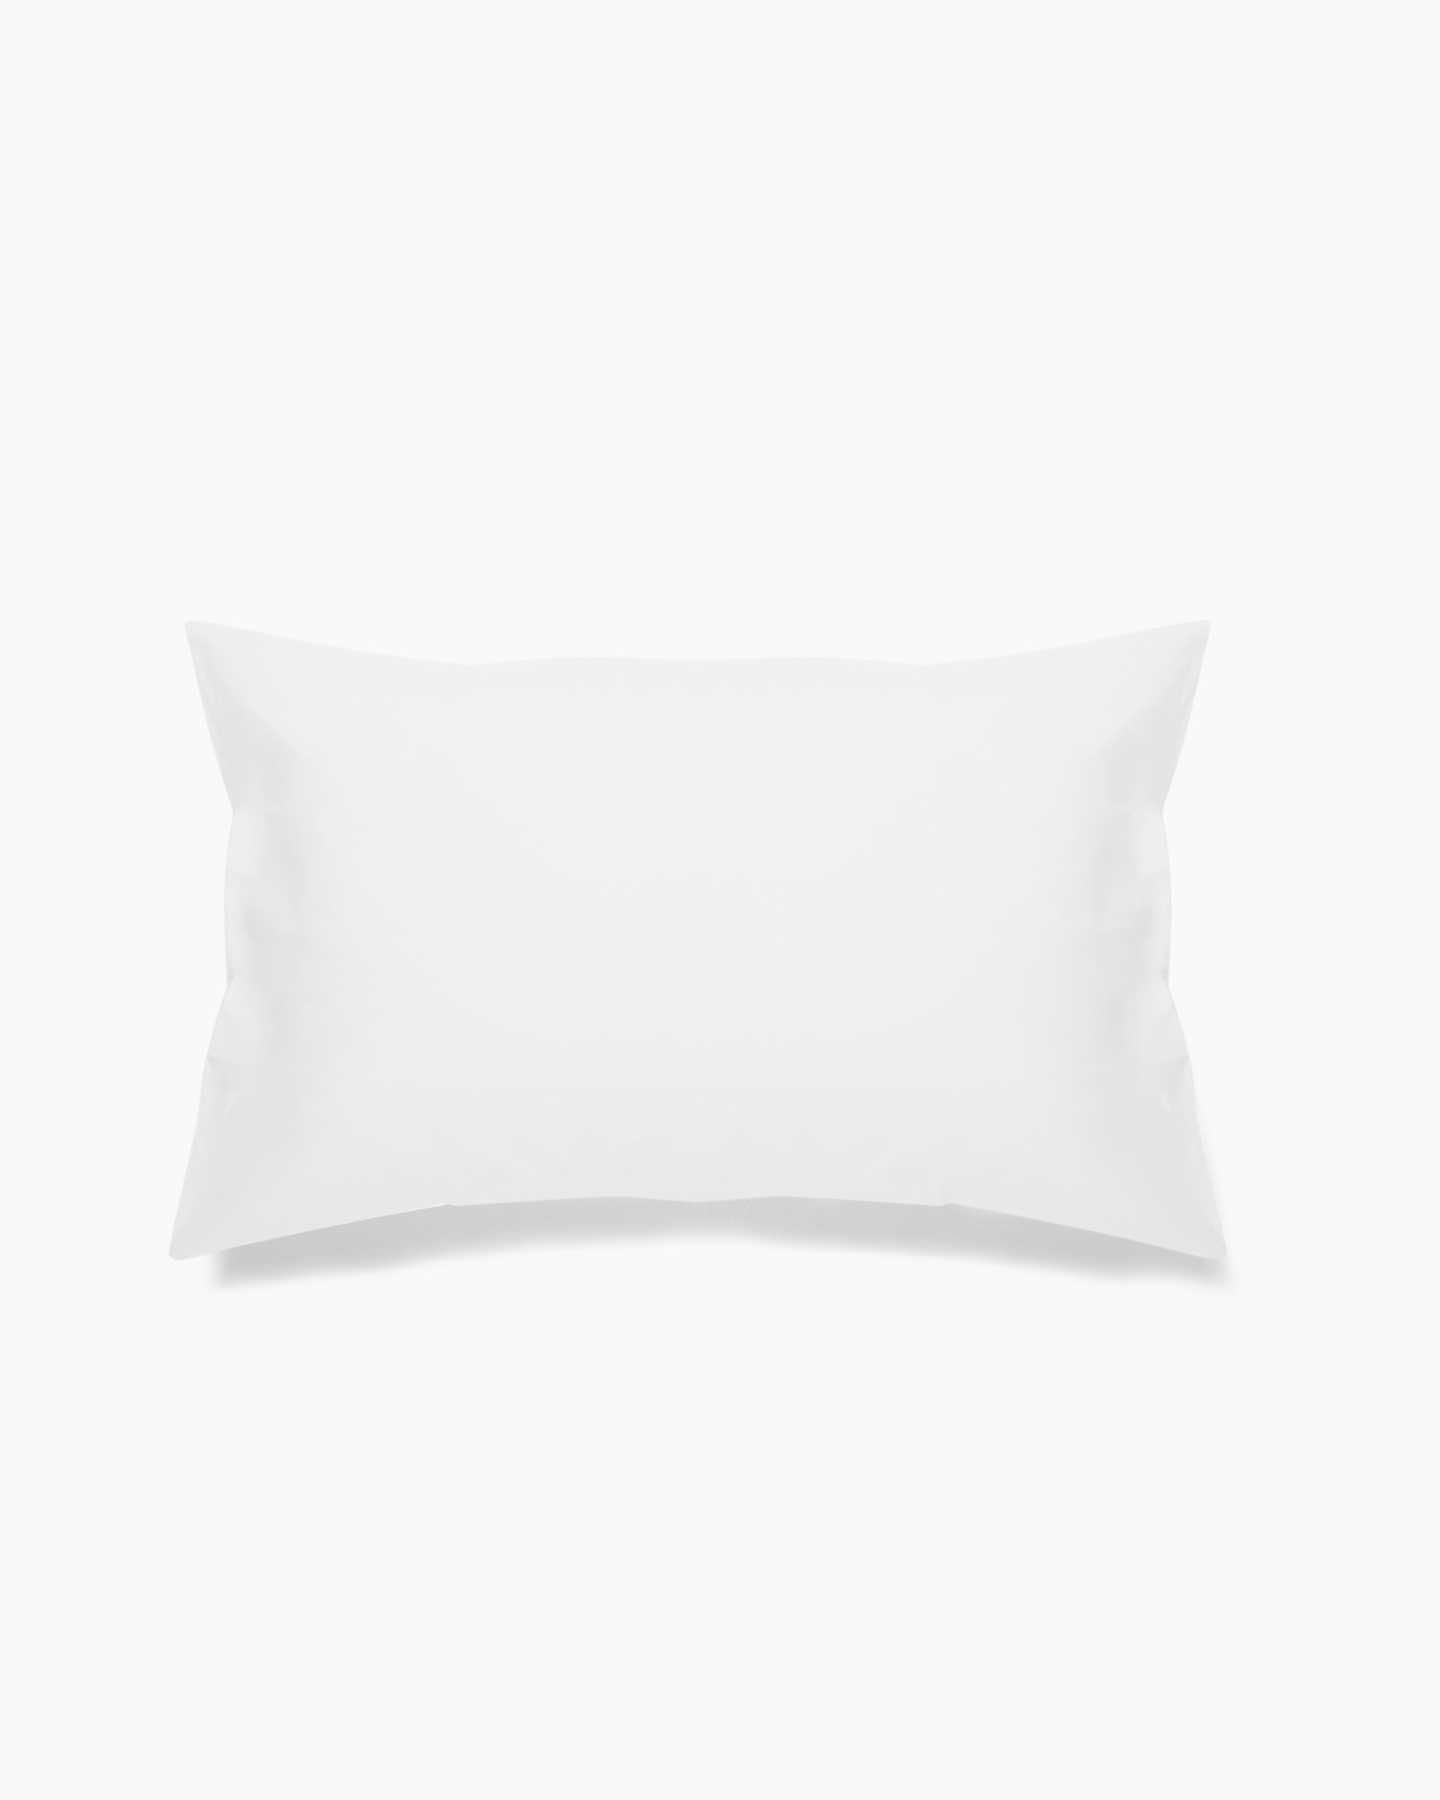 Pair With - Organic Percale Luxe Pillowcases - Sand